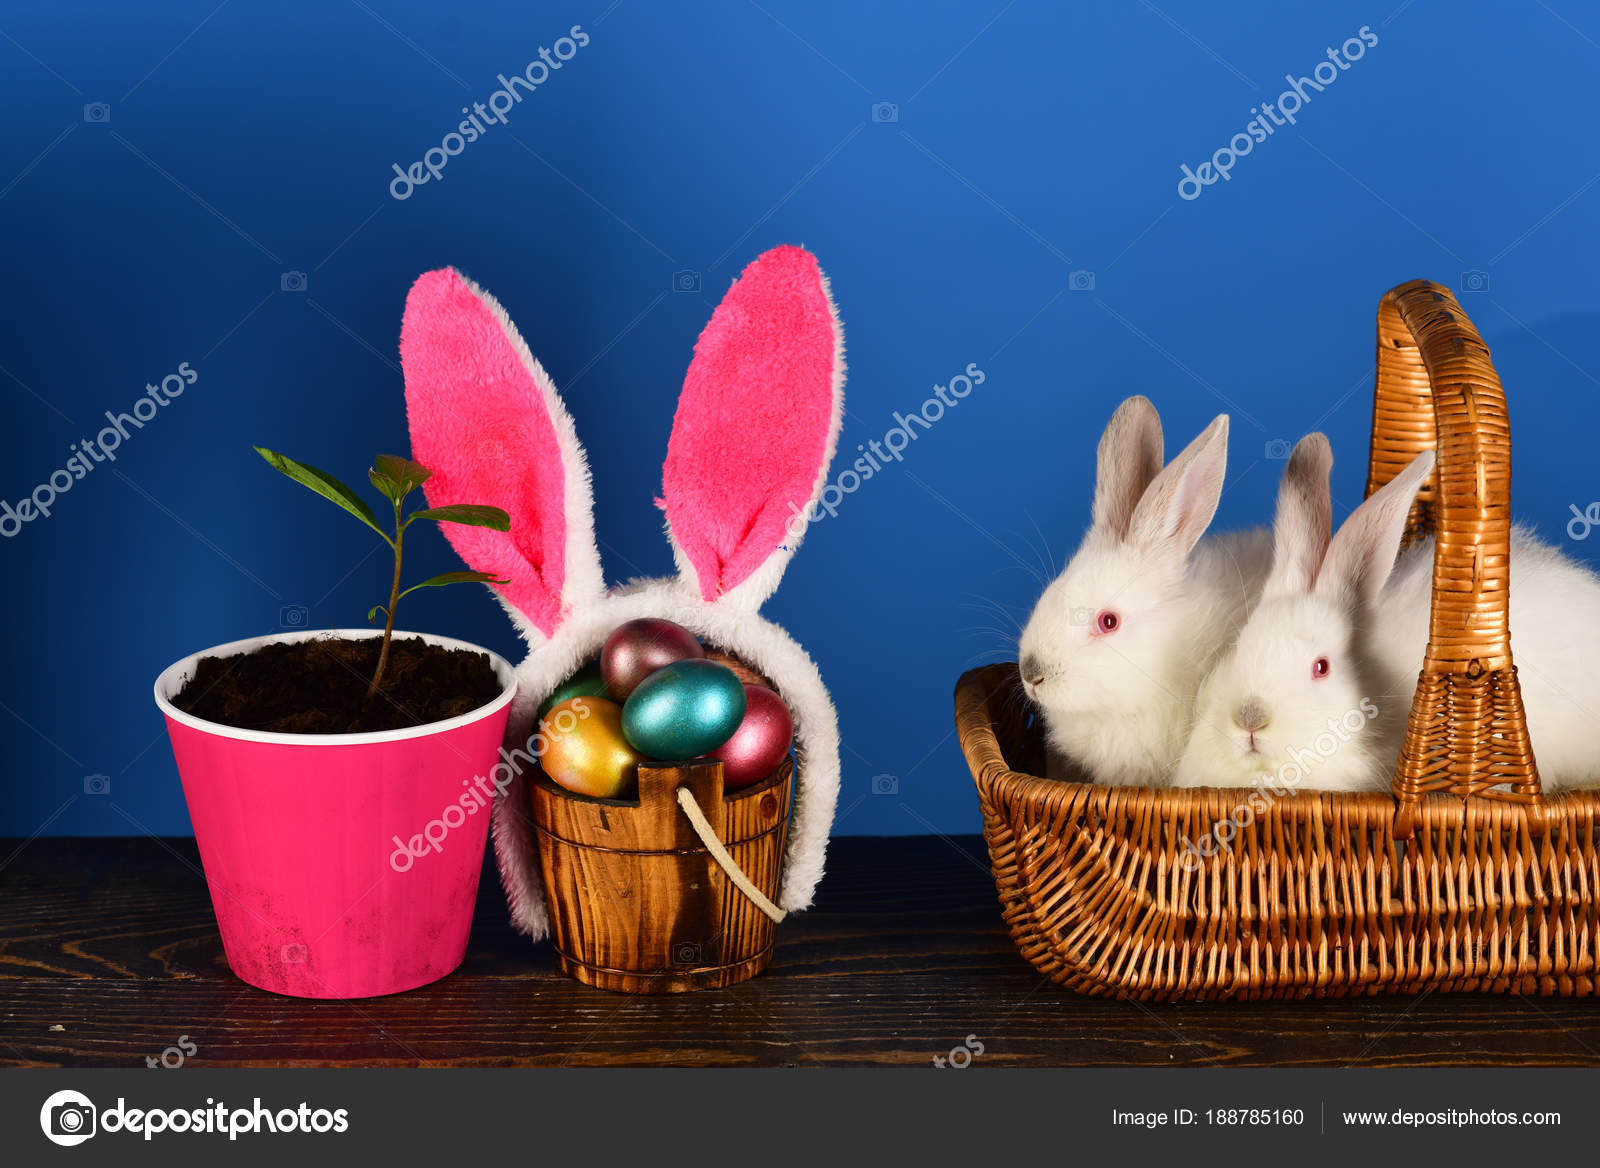 Easter Eggs Family Cute Bunny With Funny Bunny Ears Easter Egg